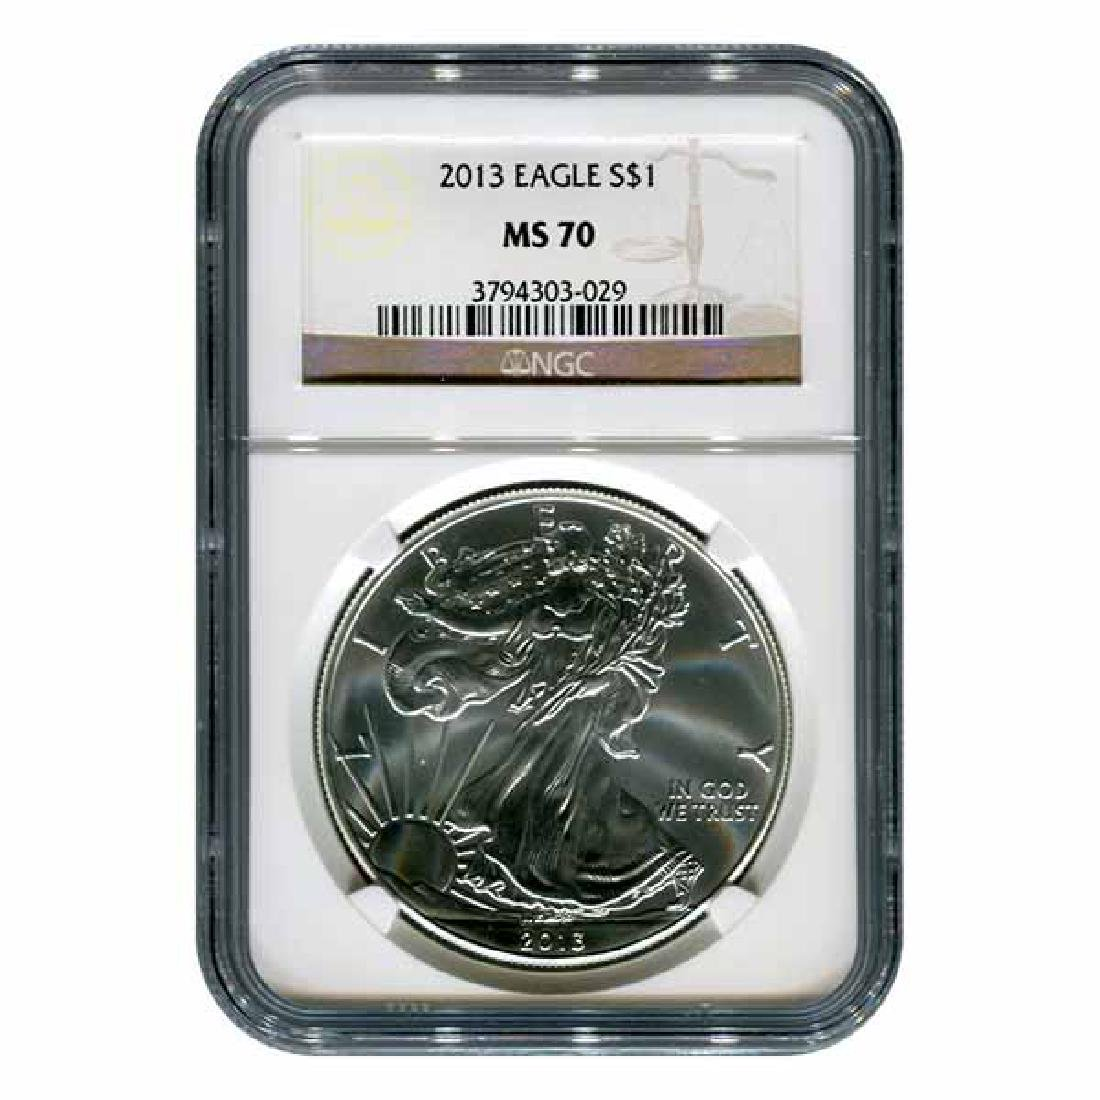 Certified Uncirculated Silver Eagle 2013 MS70 NGC